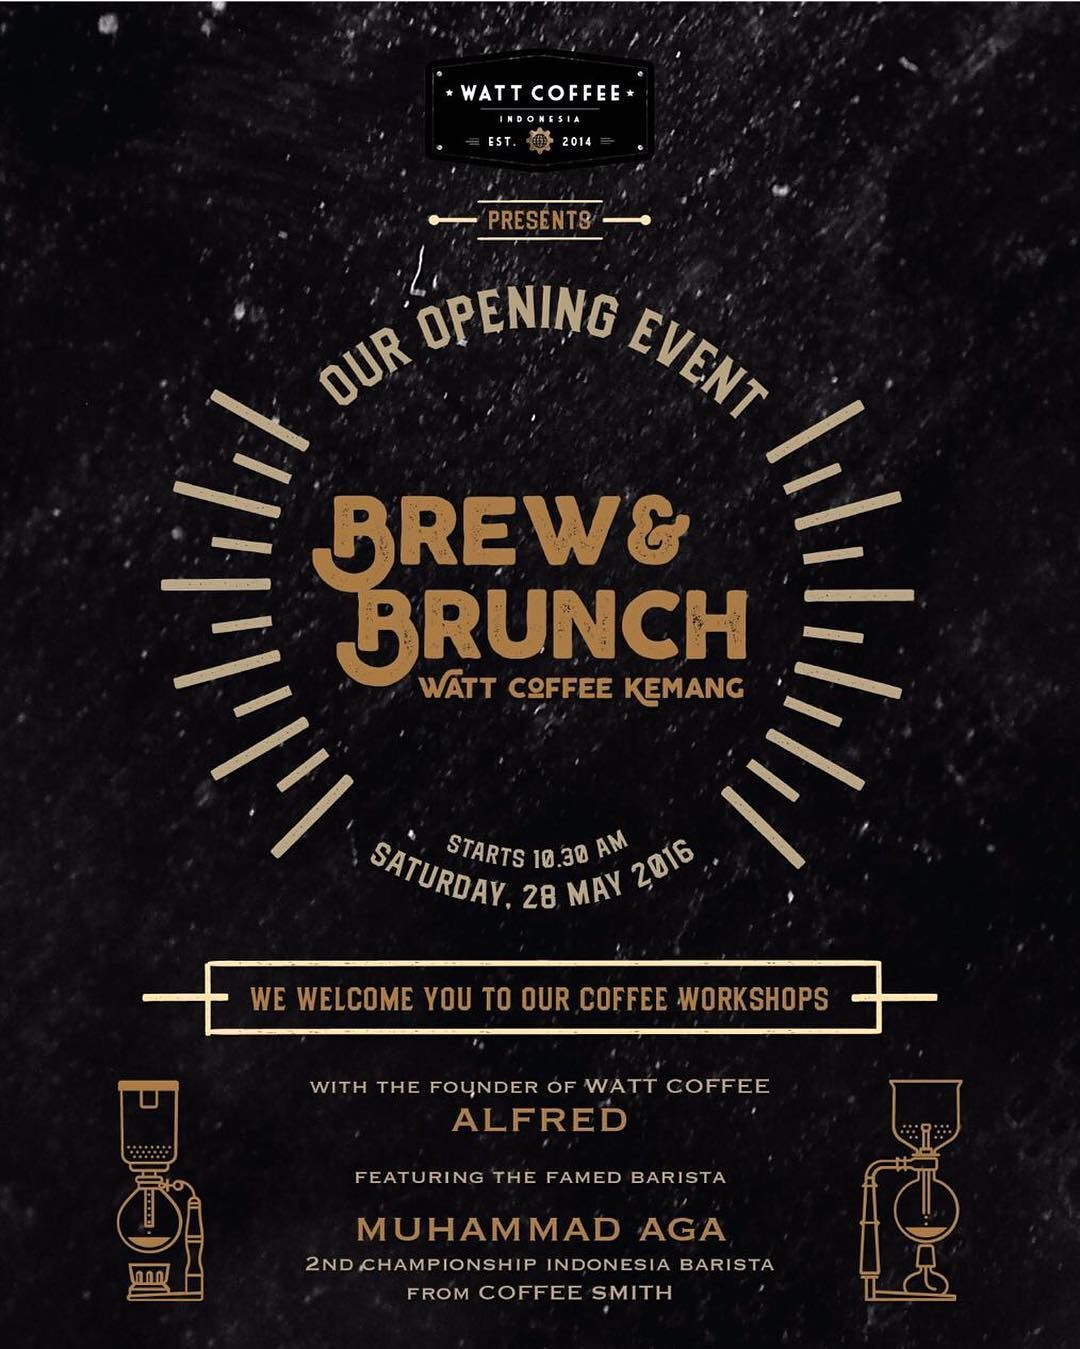 WATT COFFEE  KEMANG presents   Our Opening Event BREW & BRUNCH  Saturday May…